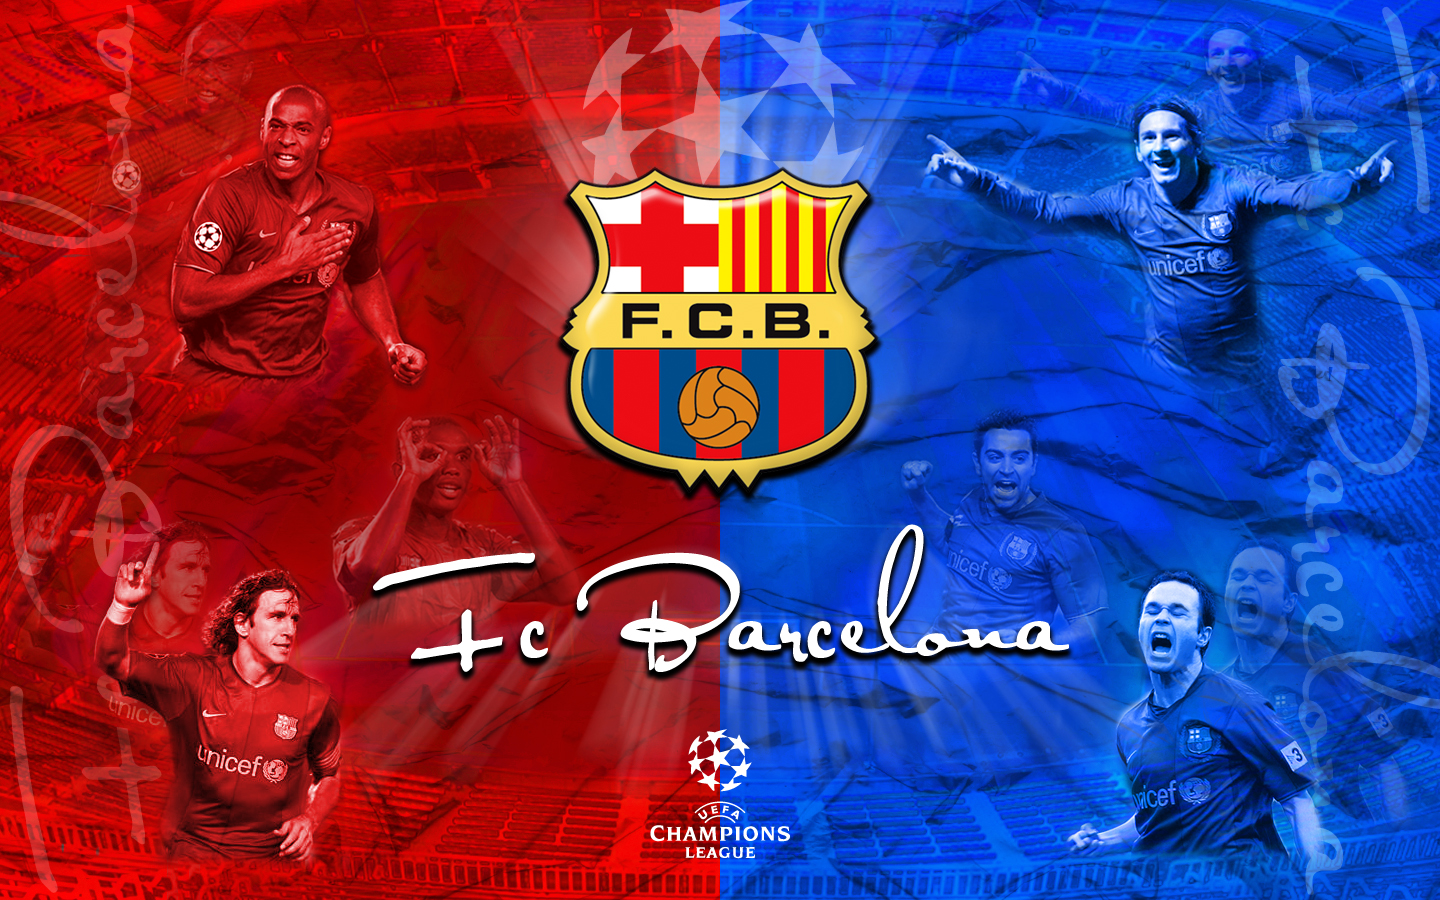 Fondos De Pantalla Del Fútbol Club Barcelona Wallpapers: Logo - FC Barcelona Wallpapers